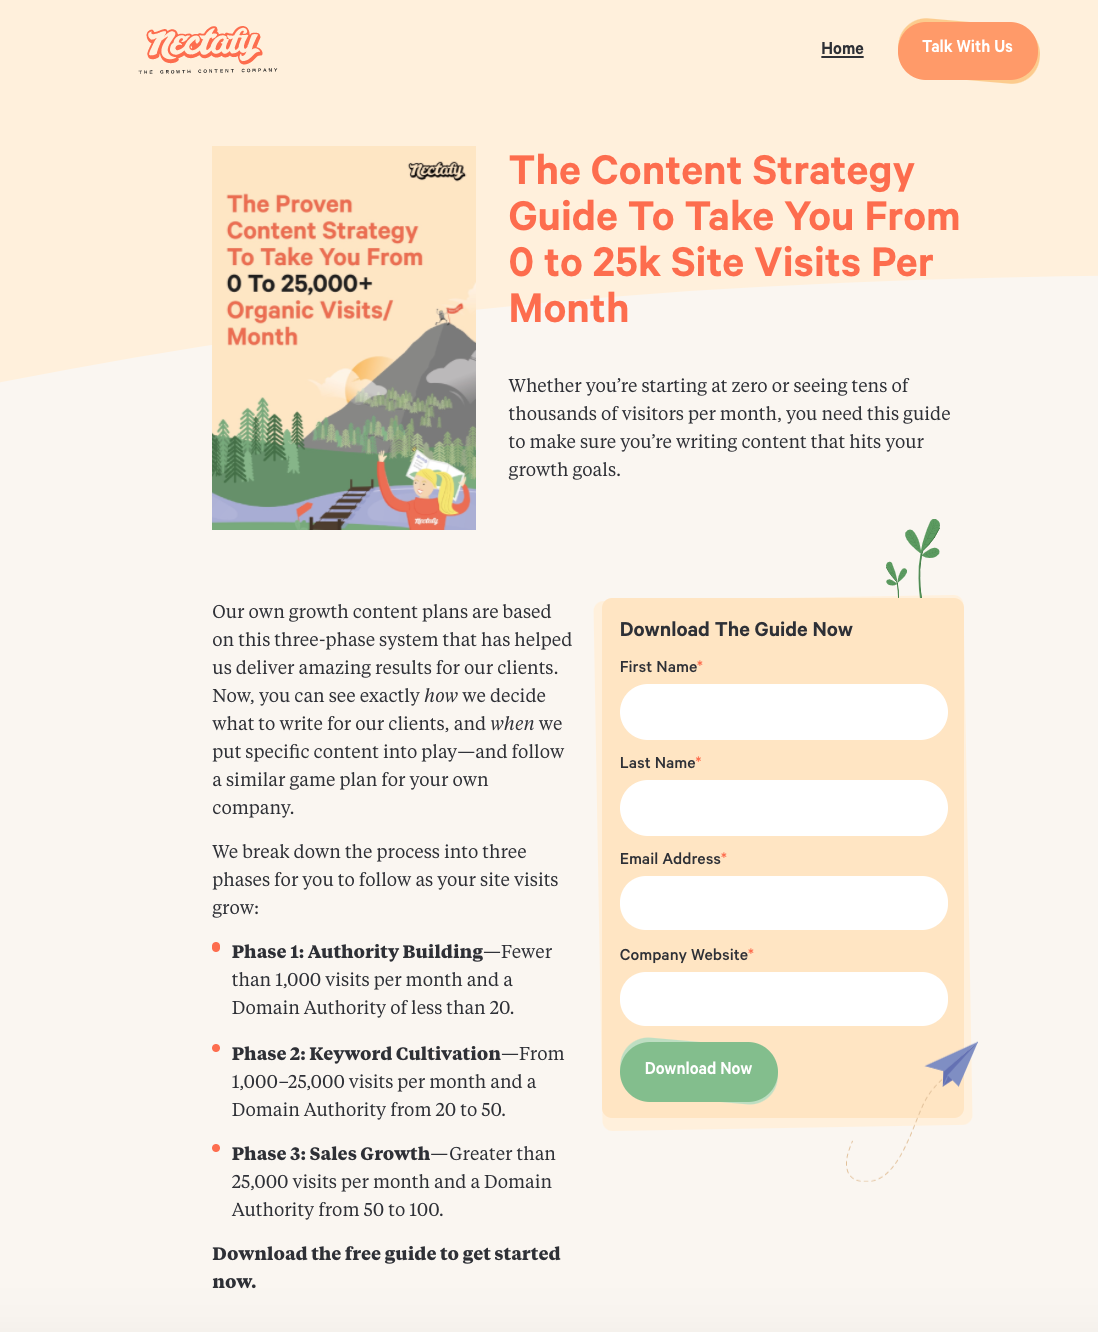 Nectafy landing page example